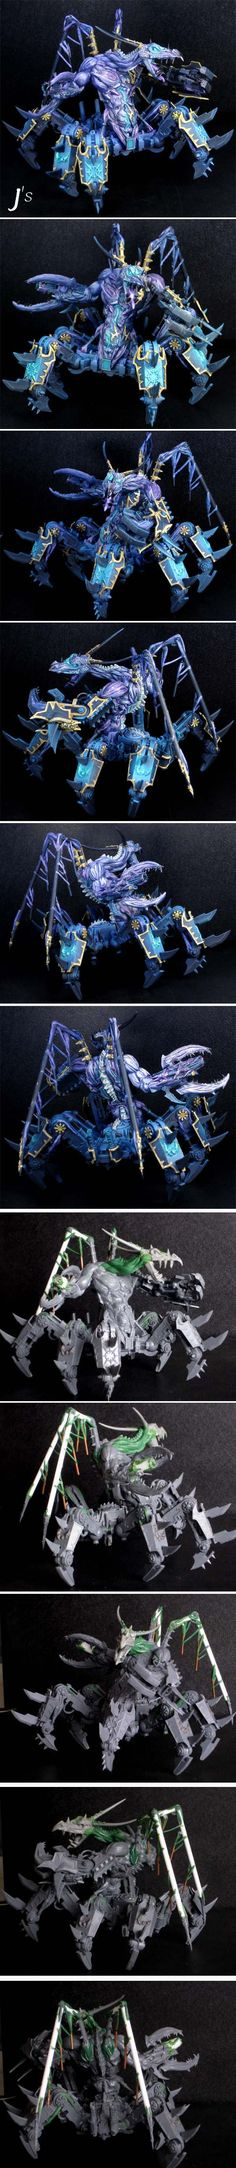 J's Thousand Sons Defiler - Tzeentch Soul Grinder 40k